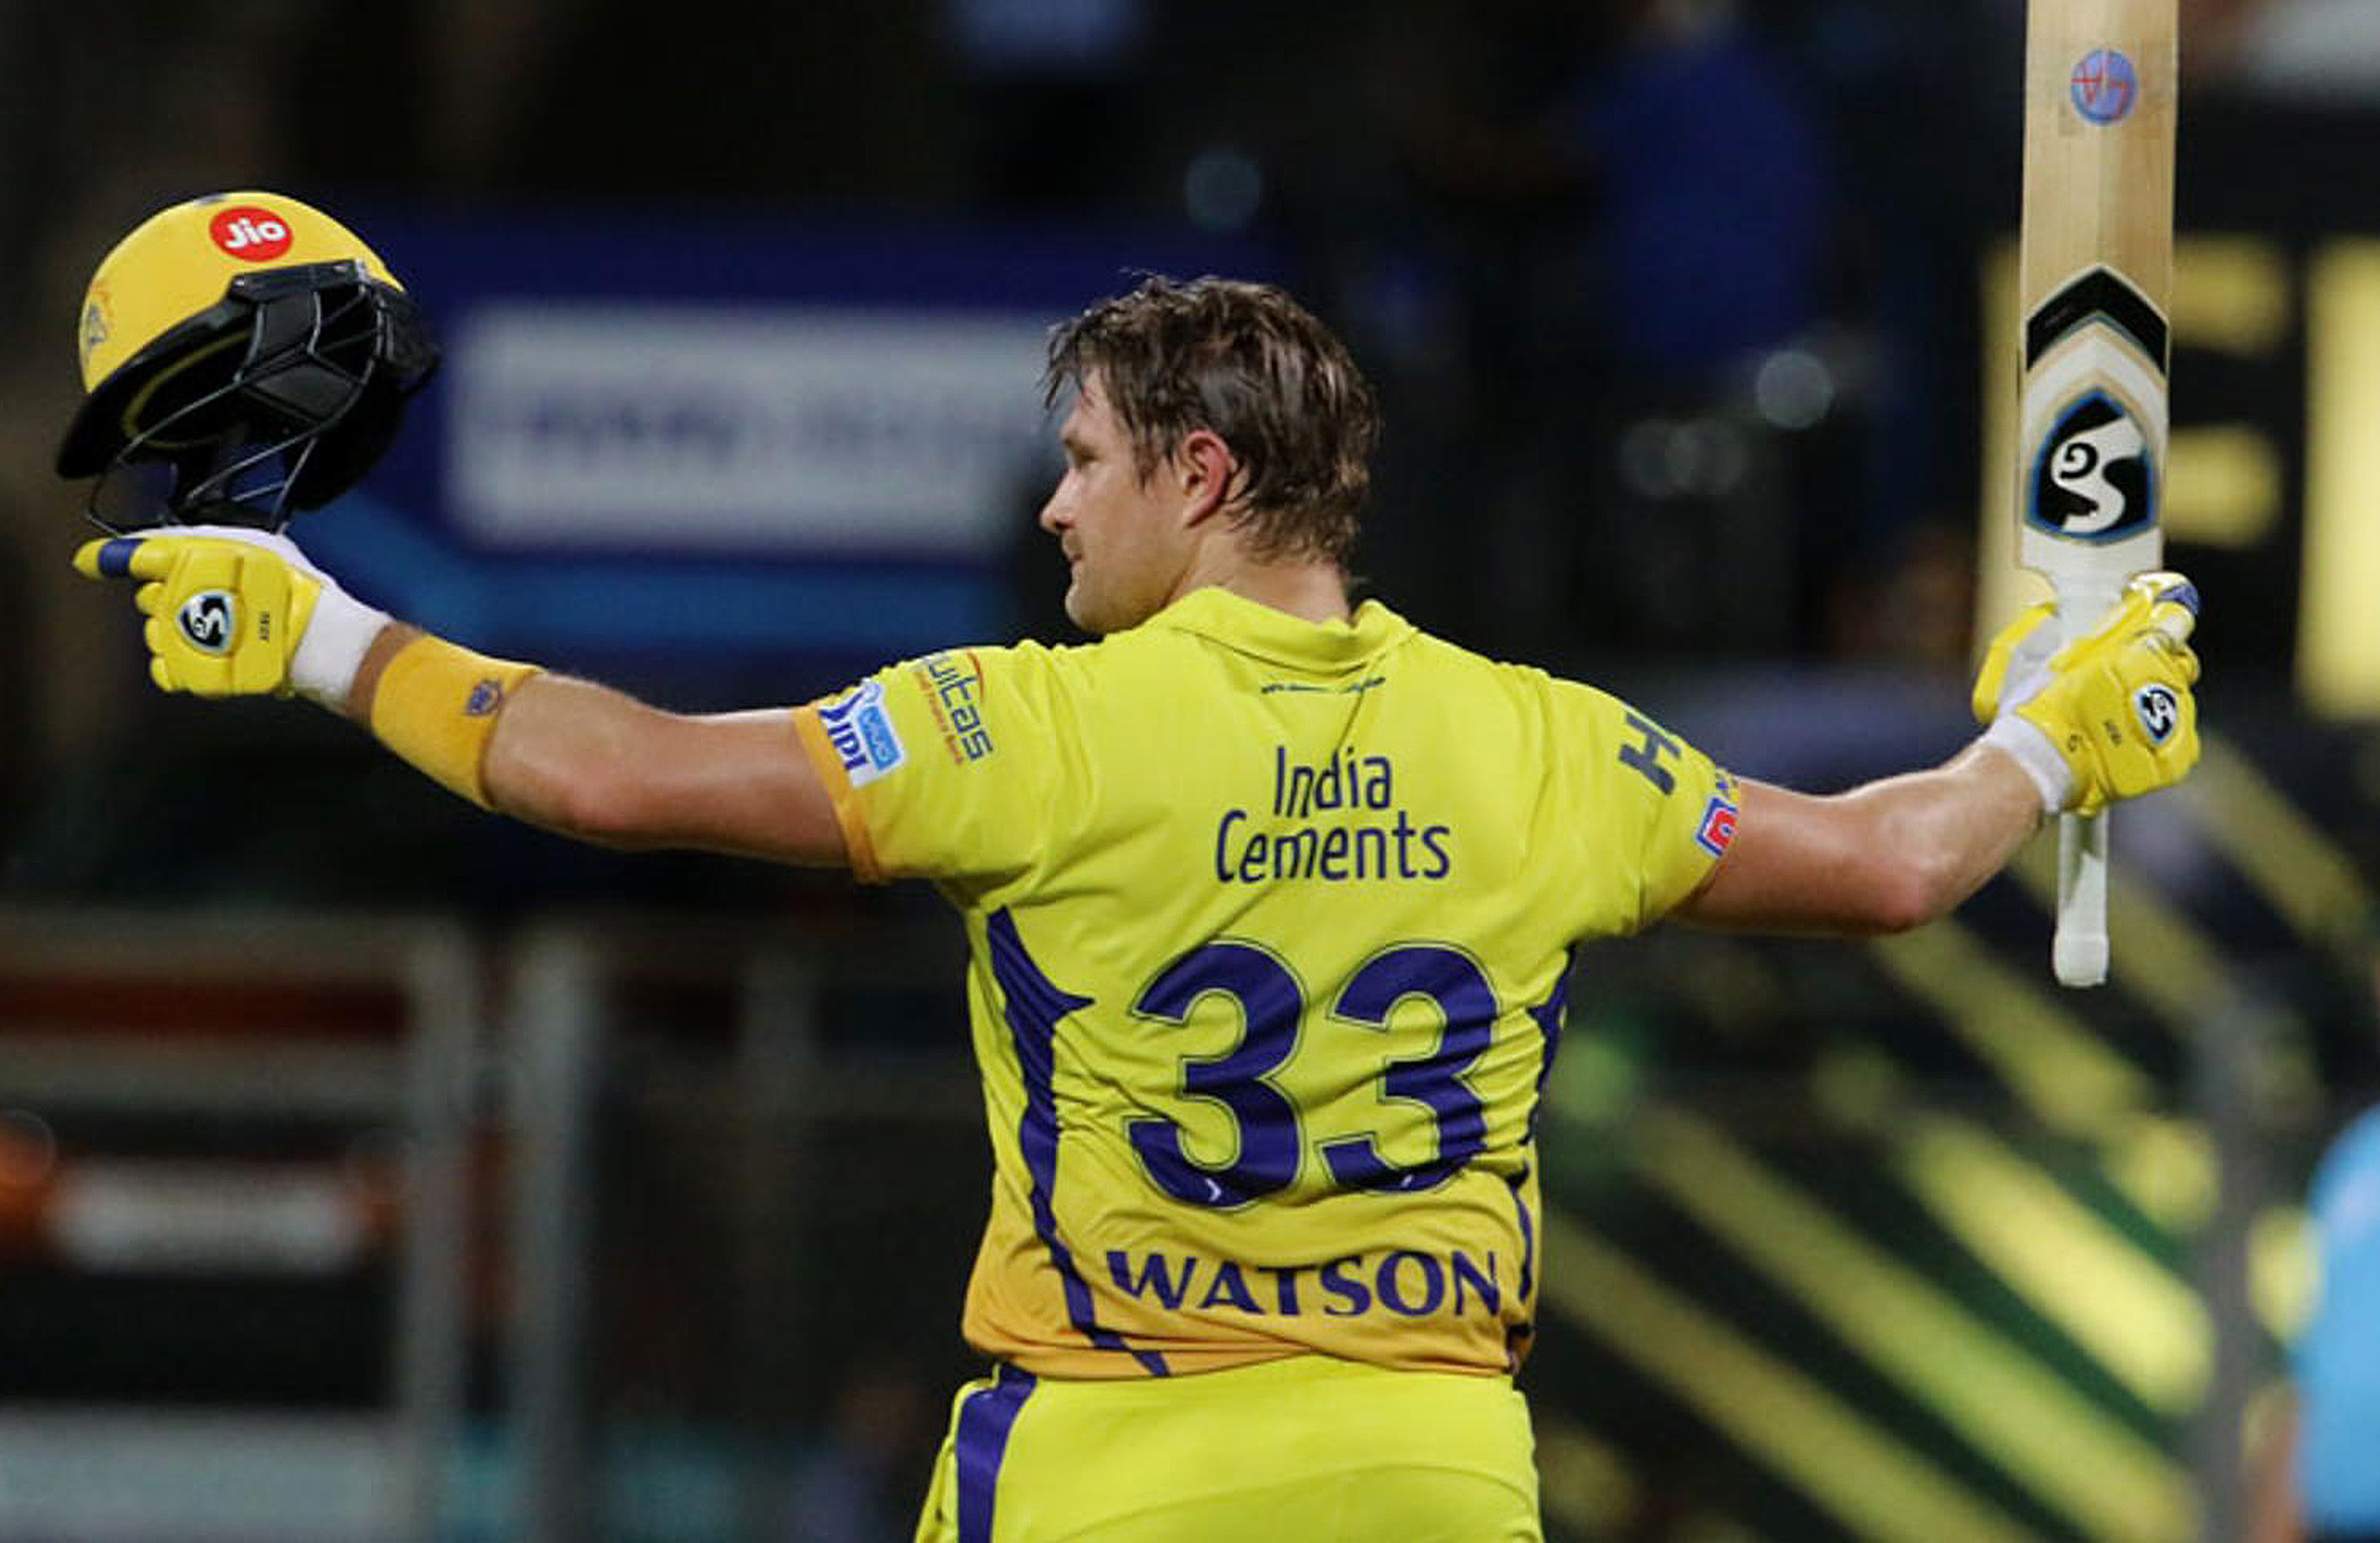 Shane Watson, the former Australian cricketer, thinks that the quality of the Big Bash League (BBL) has gone down in the recent times as compared to the quality of the Indian Premier League (IPL) and the Pakistan Super League (PSL).